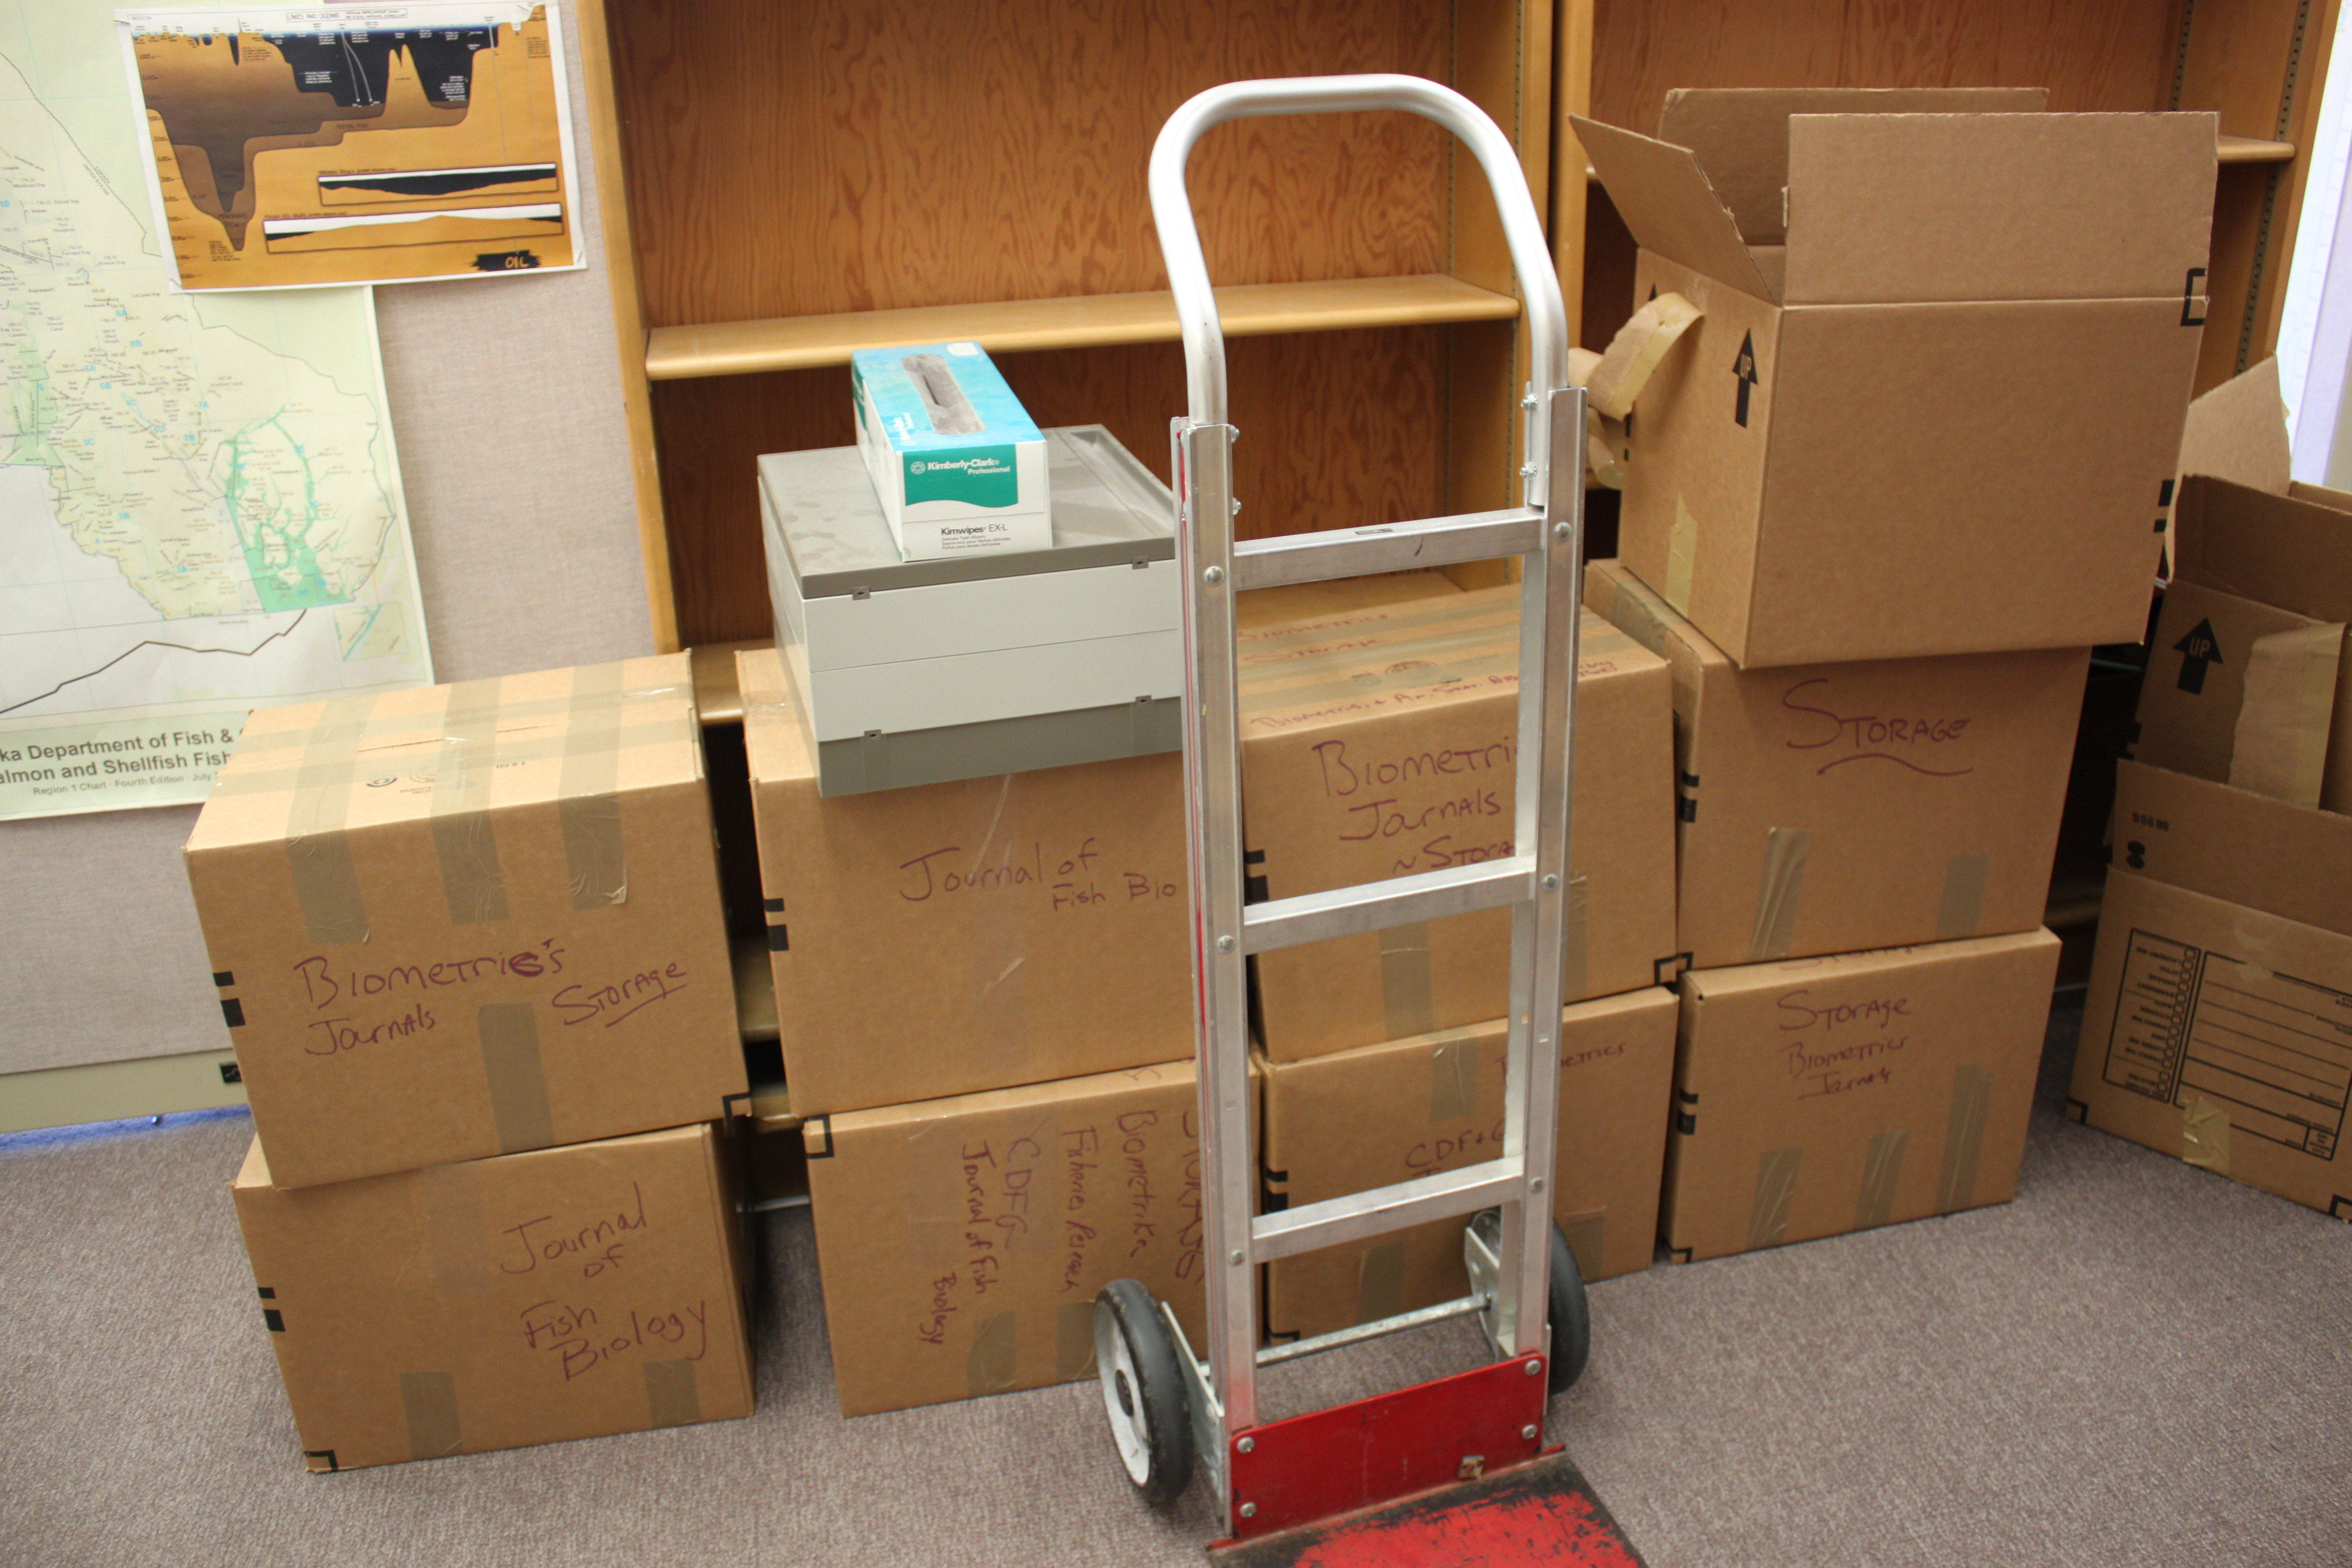 Boxes sit ready to be moved in the Douglas Island Building. (Photo by Lisa Phu/KTOO)